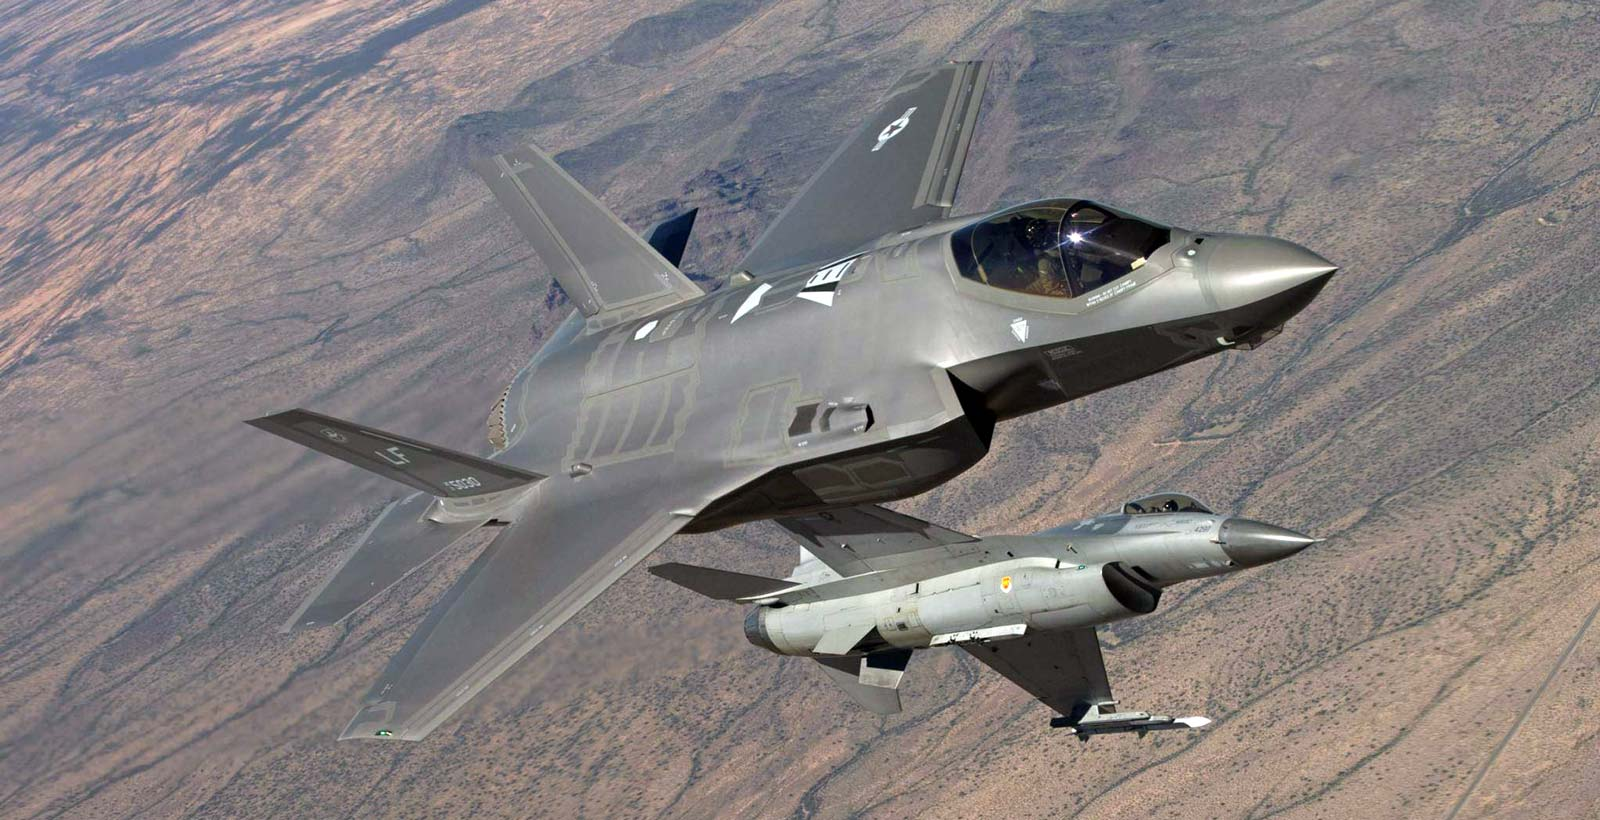 Le F-35 Lightning II et le F-16 Fighting Falcon côtes à côtes (Photo : US Air Force).